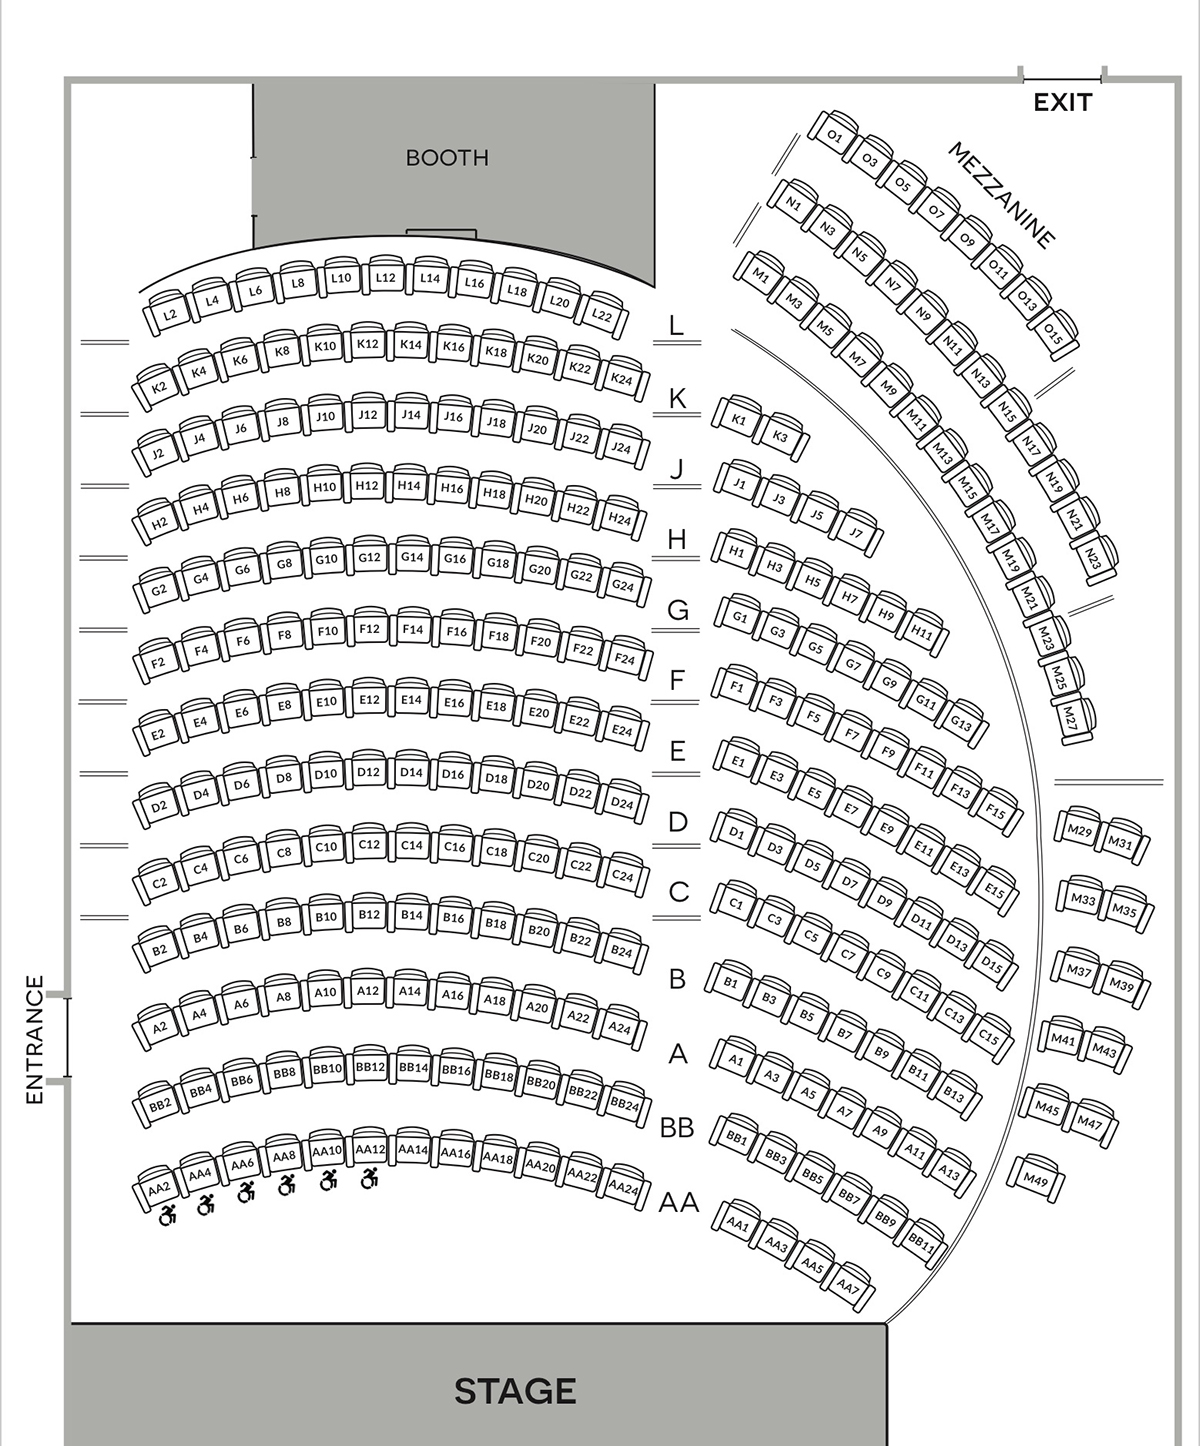 Emelin Theatre Seating Chart